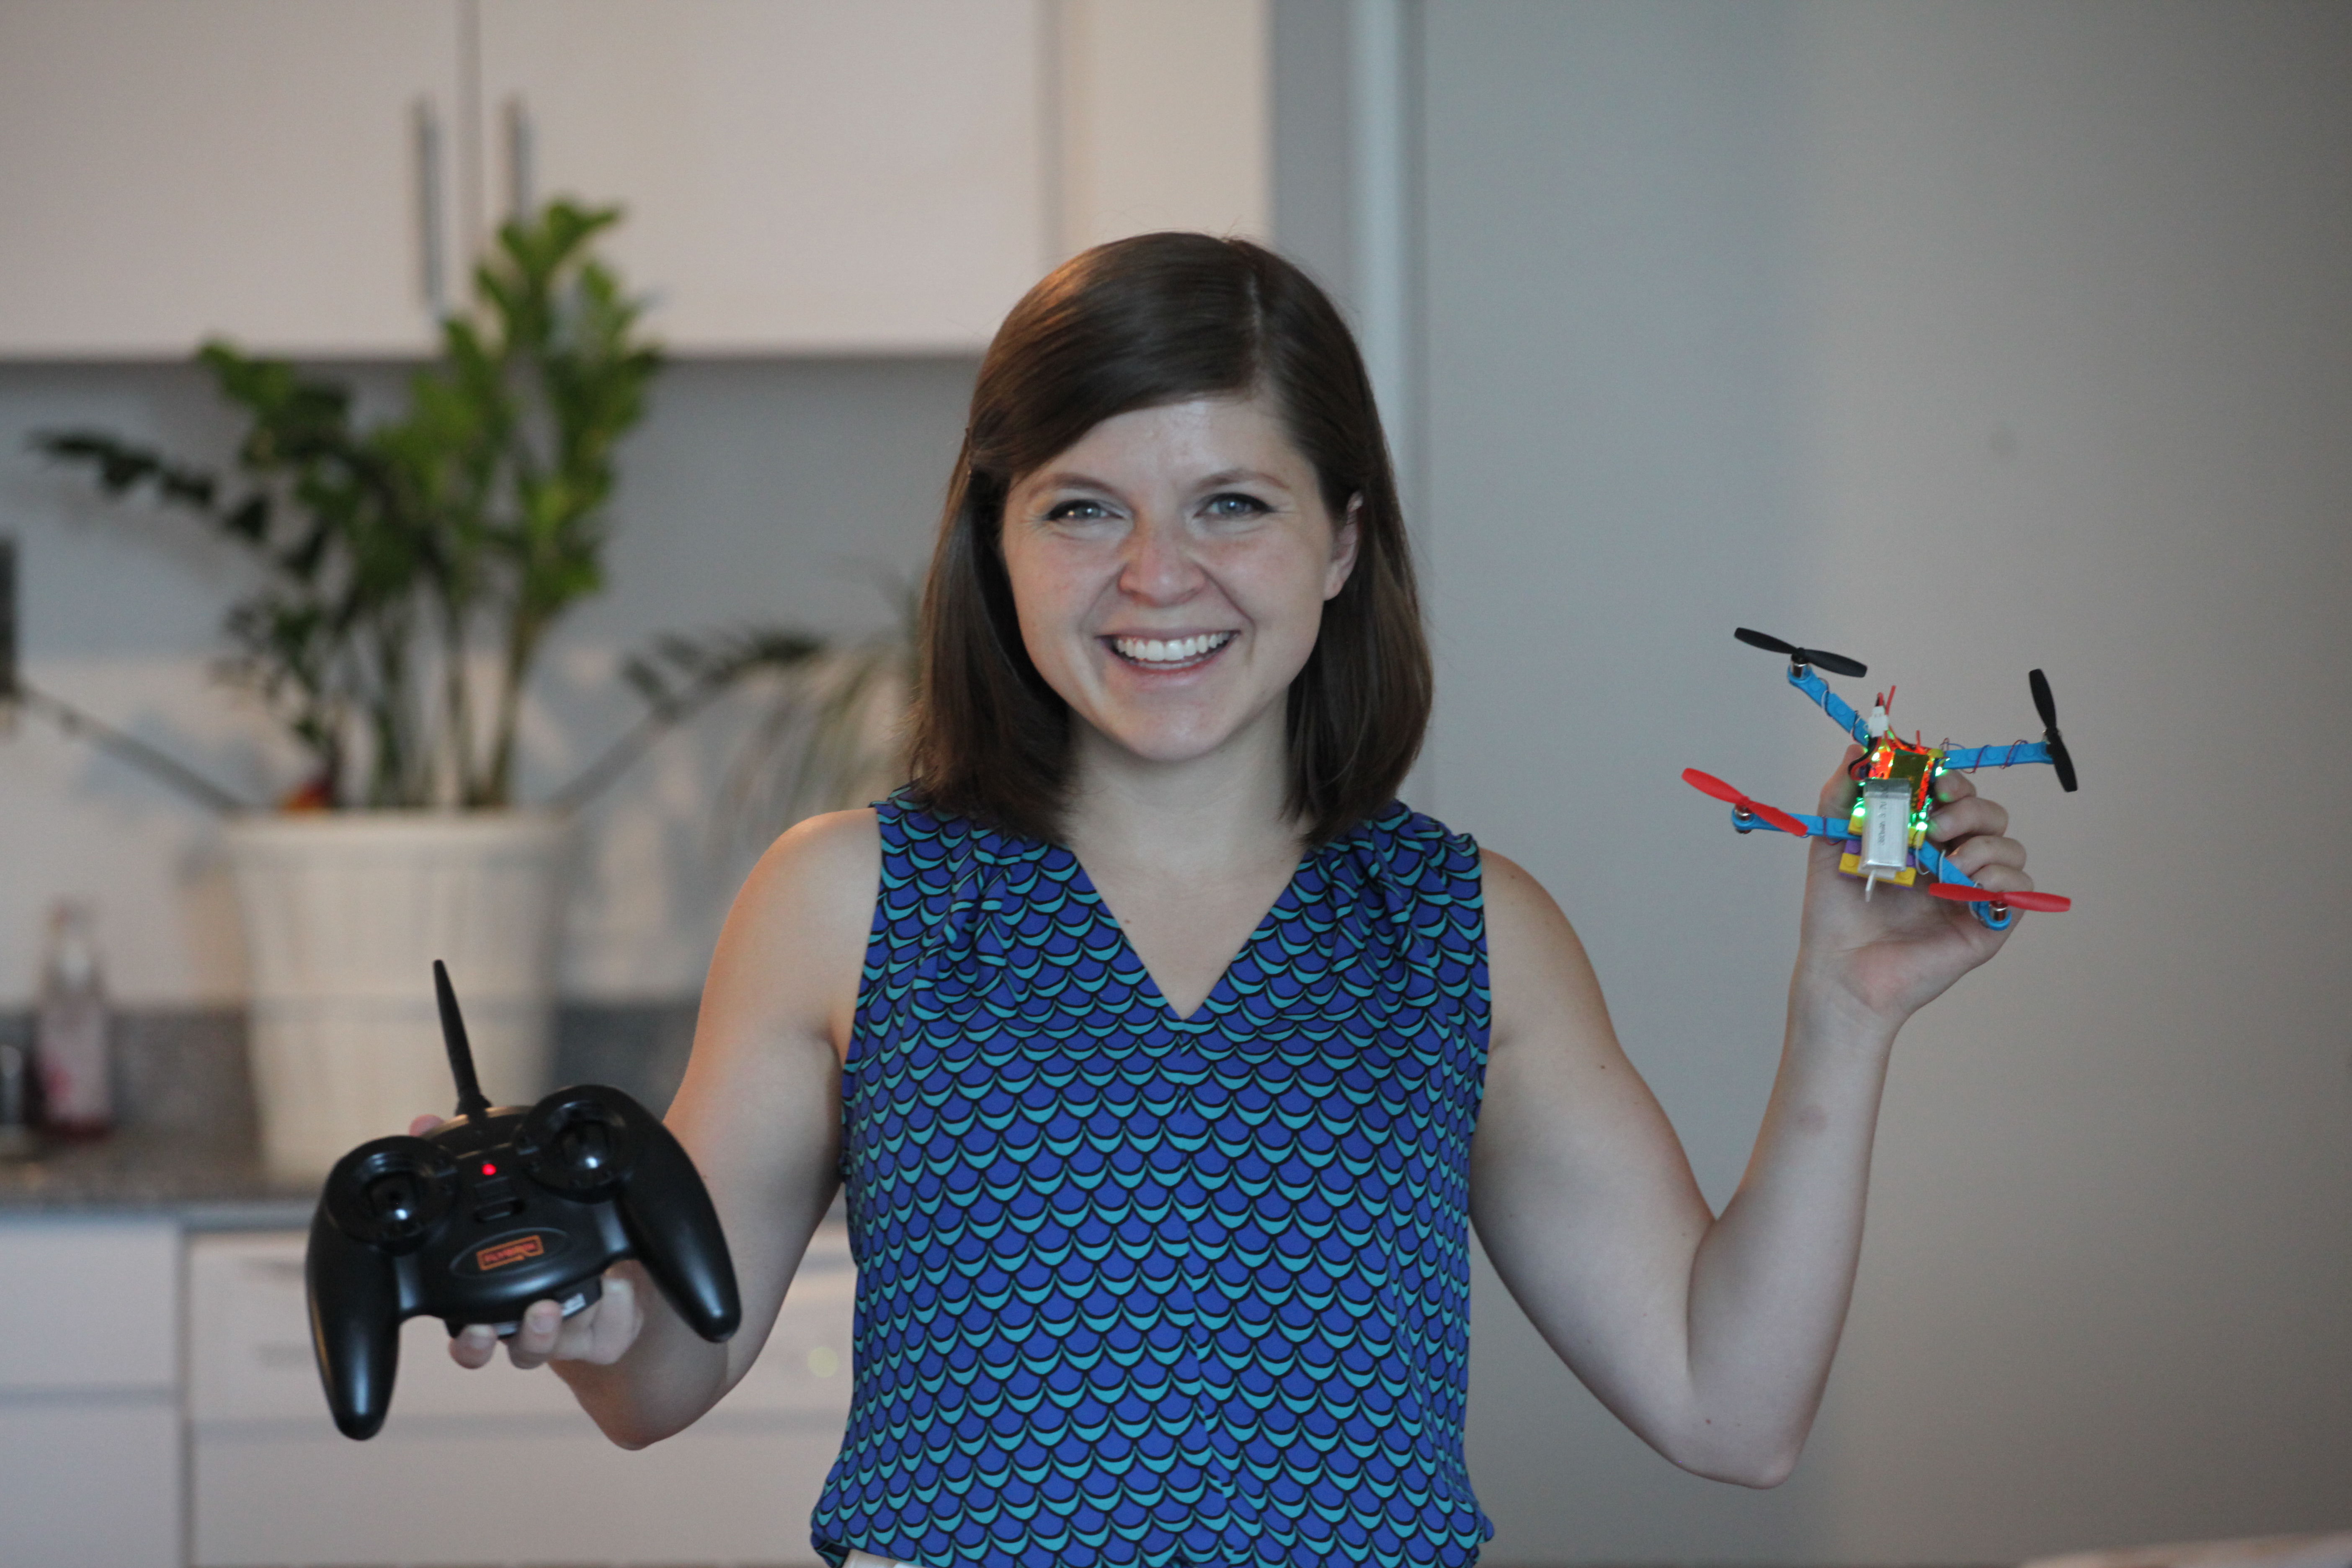 Flybrix review: using Legos to build a drone